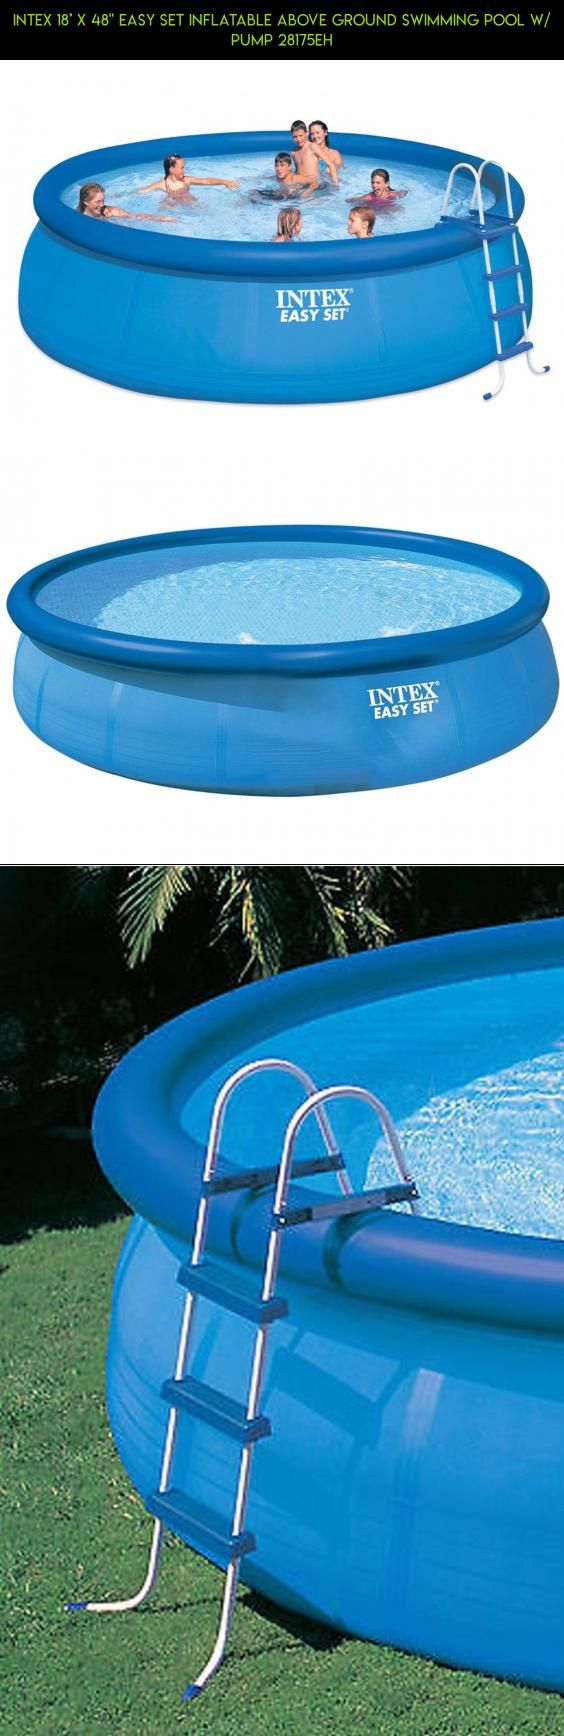 25 Best Ideas About Intex Swimming Pool On Pinterest Pool Ideas Swimming Pool Decks And Pool